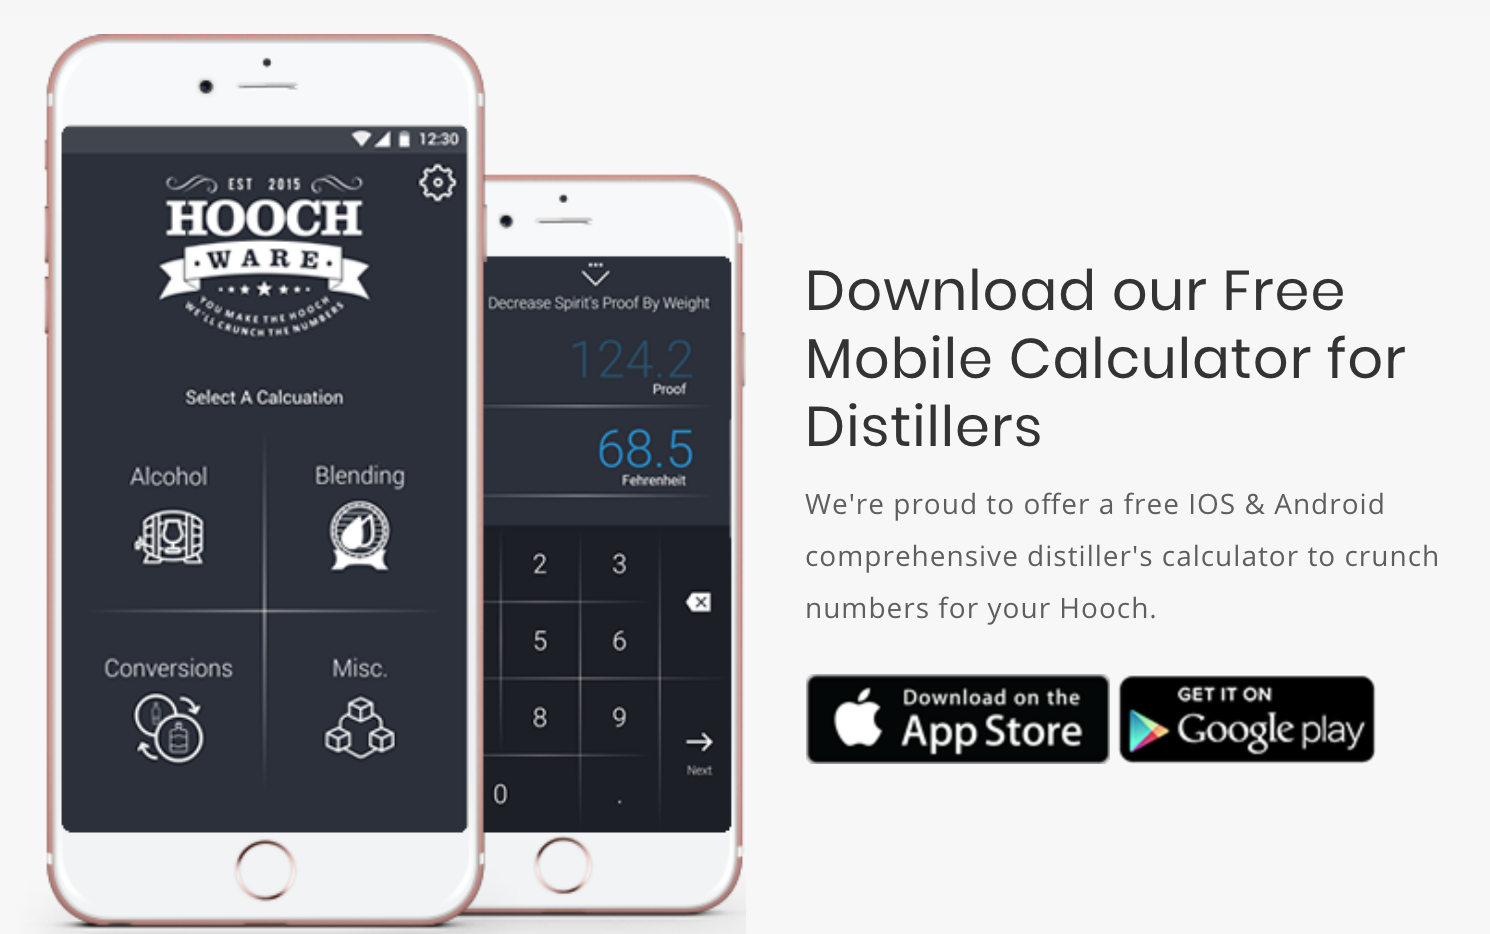 5 Must Have Apps for Your Distillery